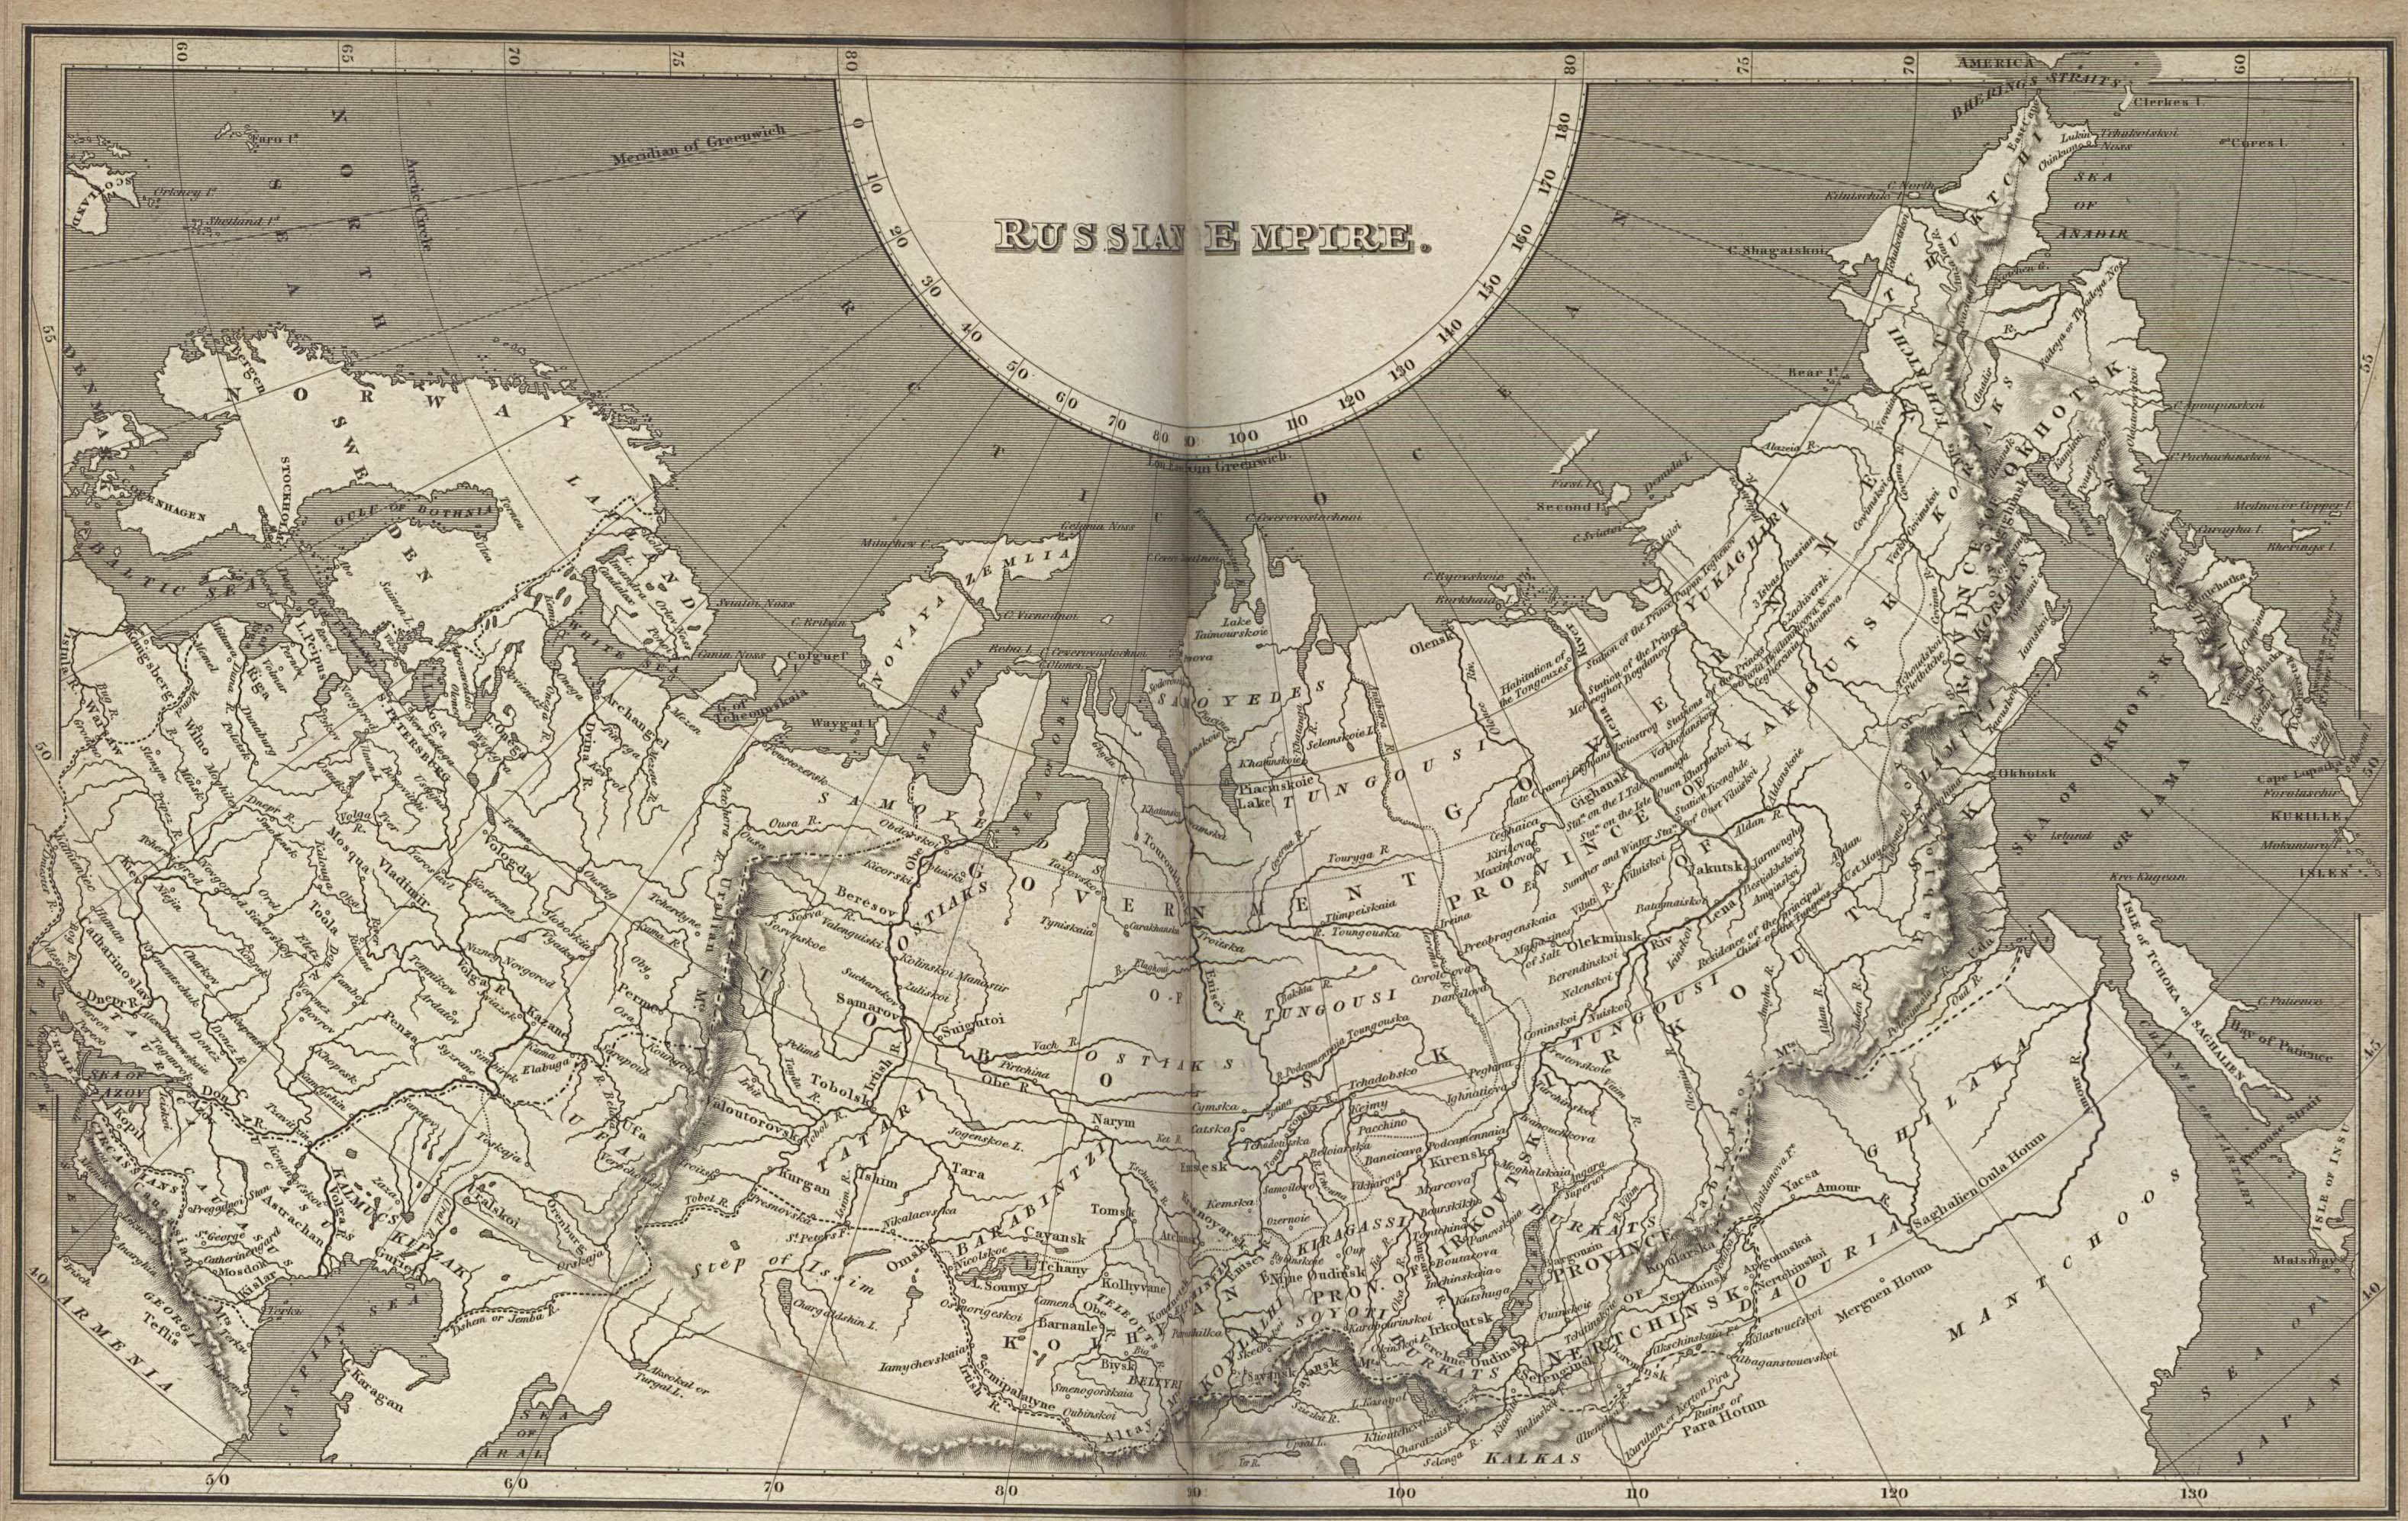 Map of the Russian Empire, 1820